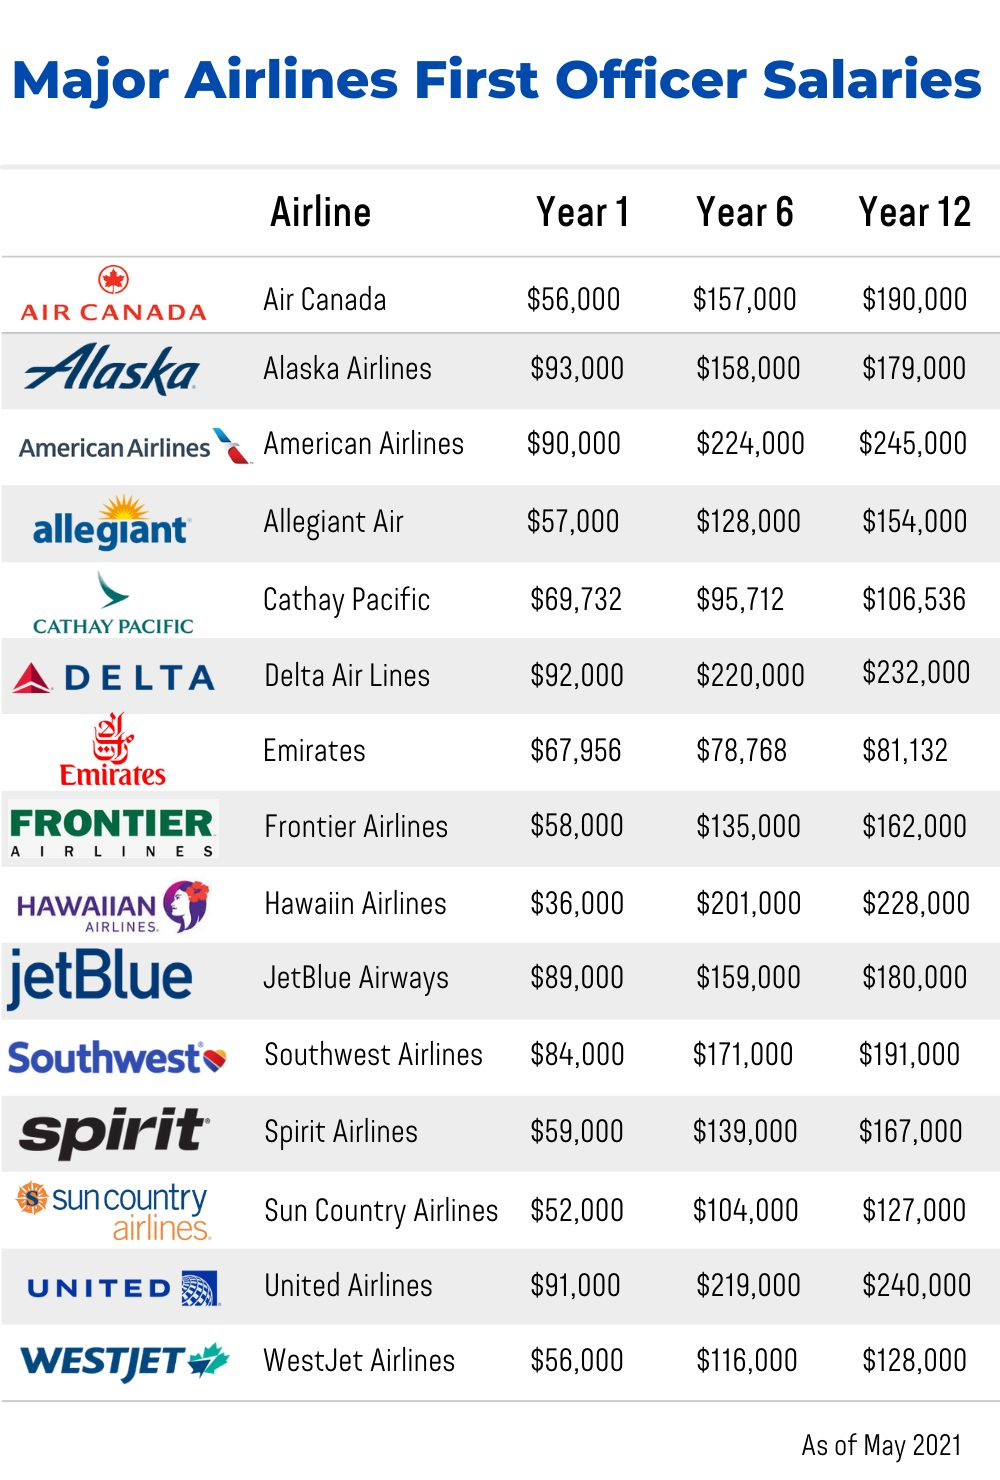 Major Airlines First Officer Salaries